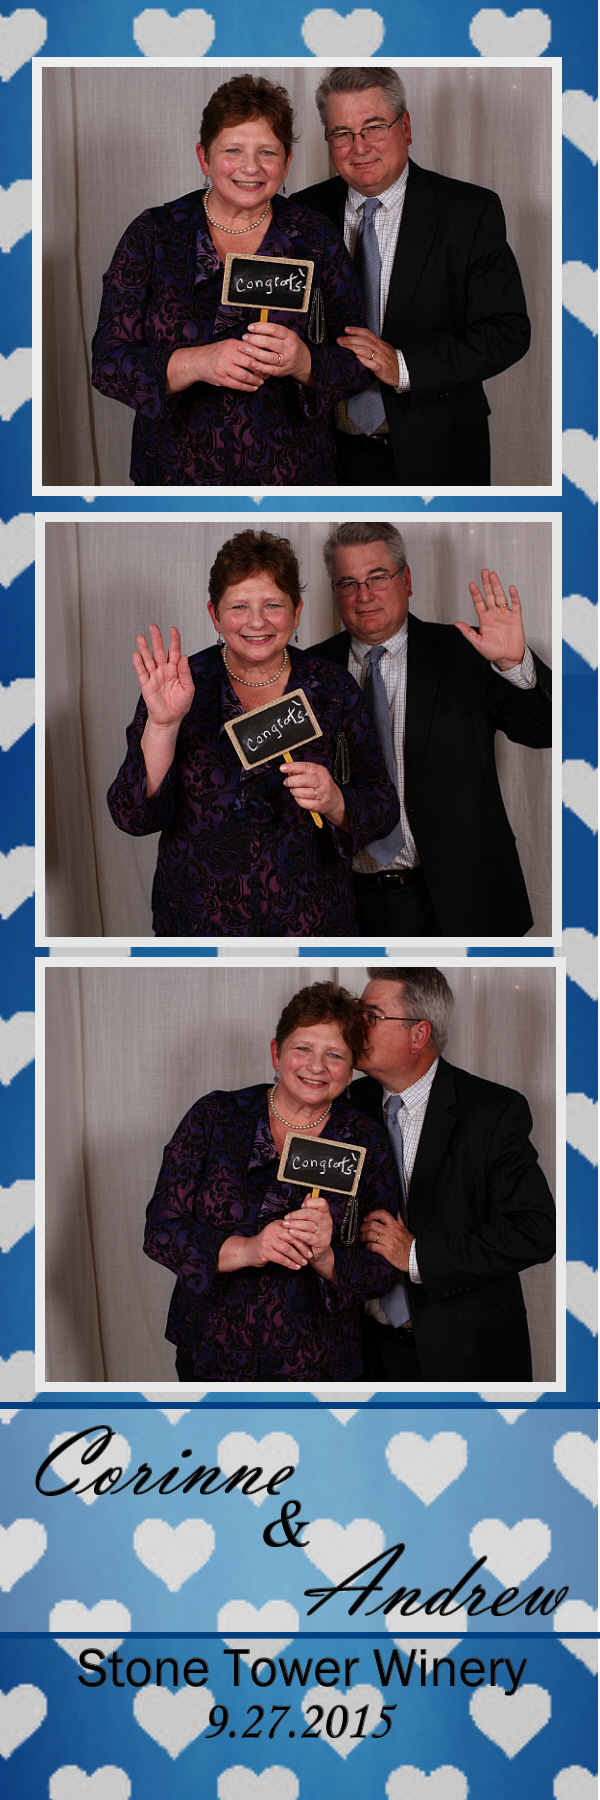 Guest House Events Photo Booth C&A (21).jpg